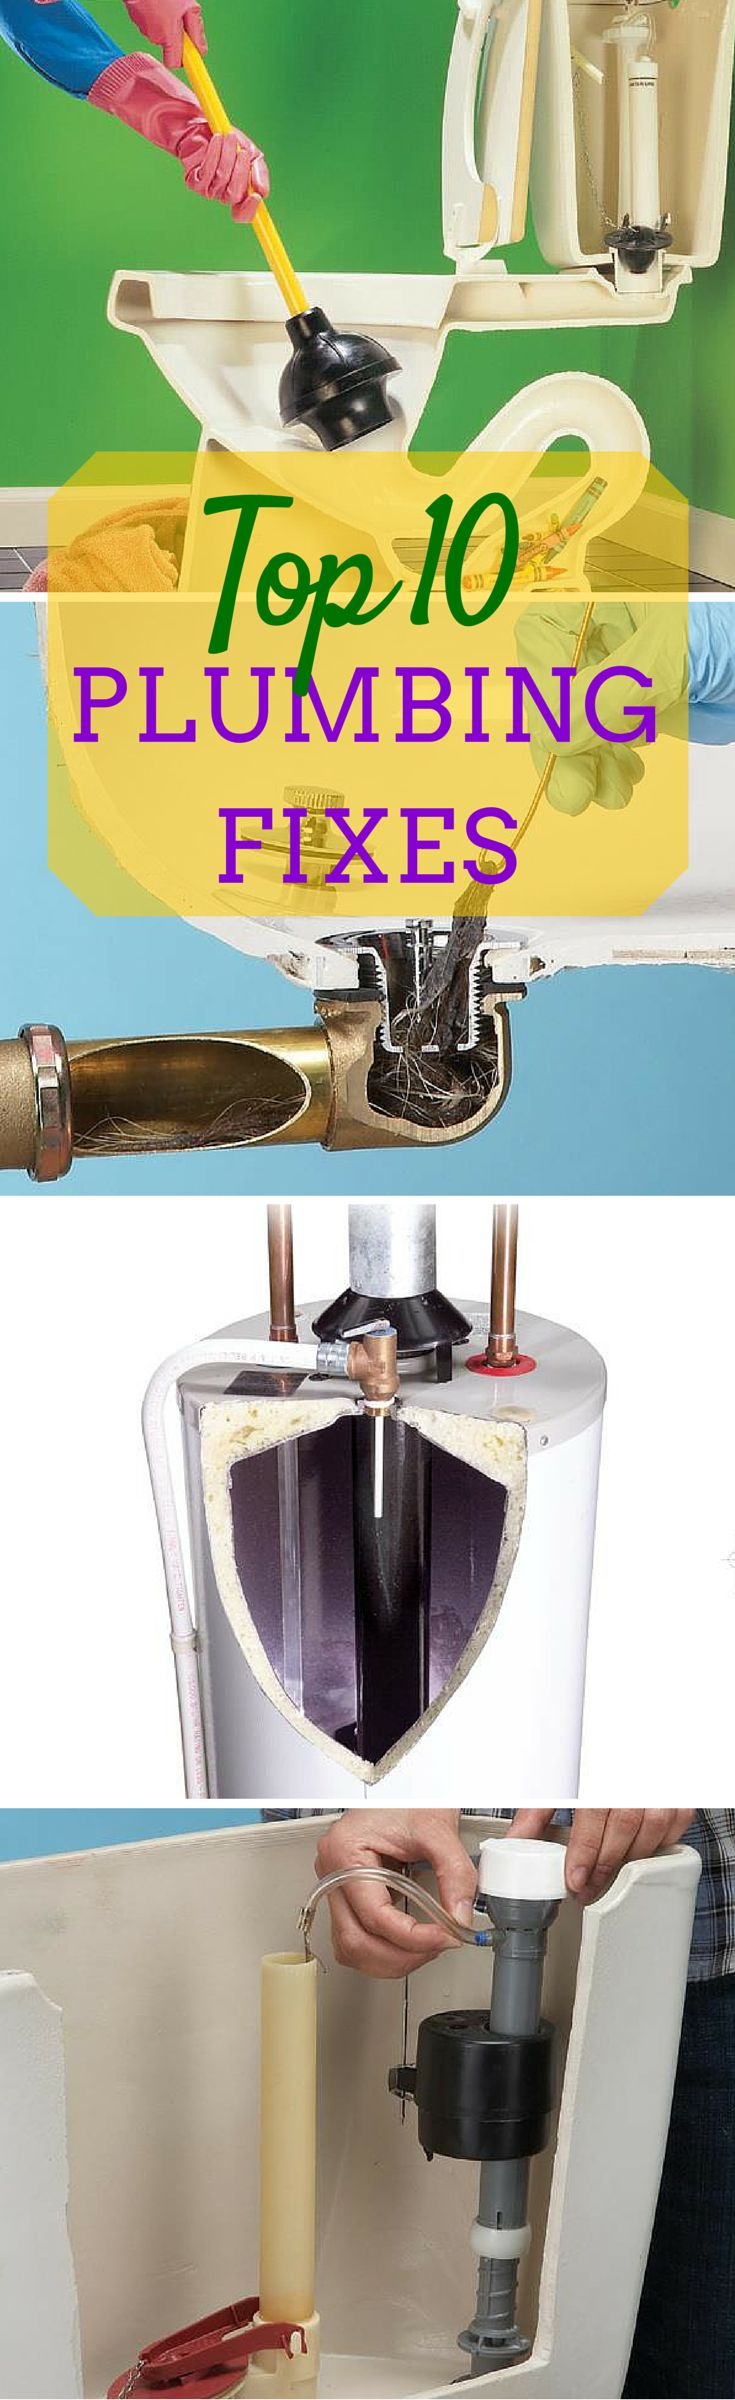 The Top 10 Plumbing Fixes - Save money by doing simple plumbing repairs yourself. These fixes are completely DIY with basic tools and skills.